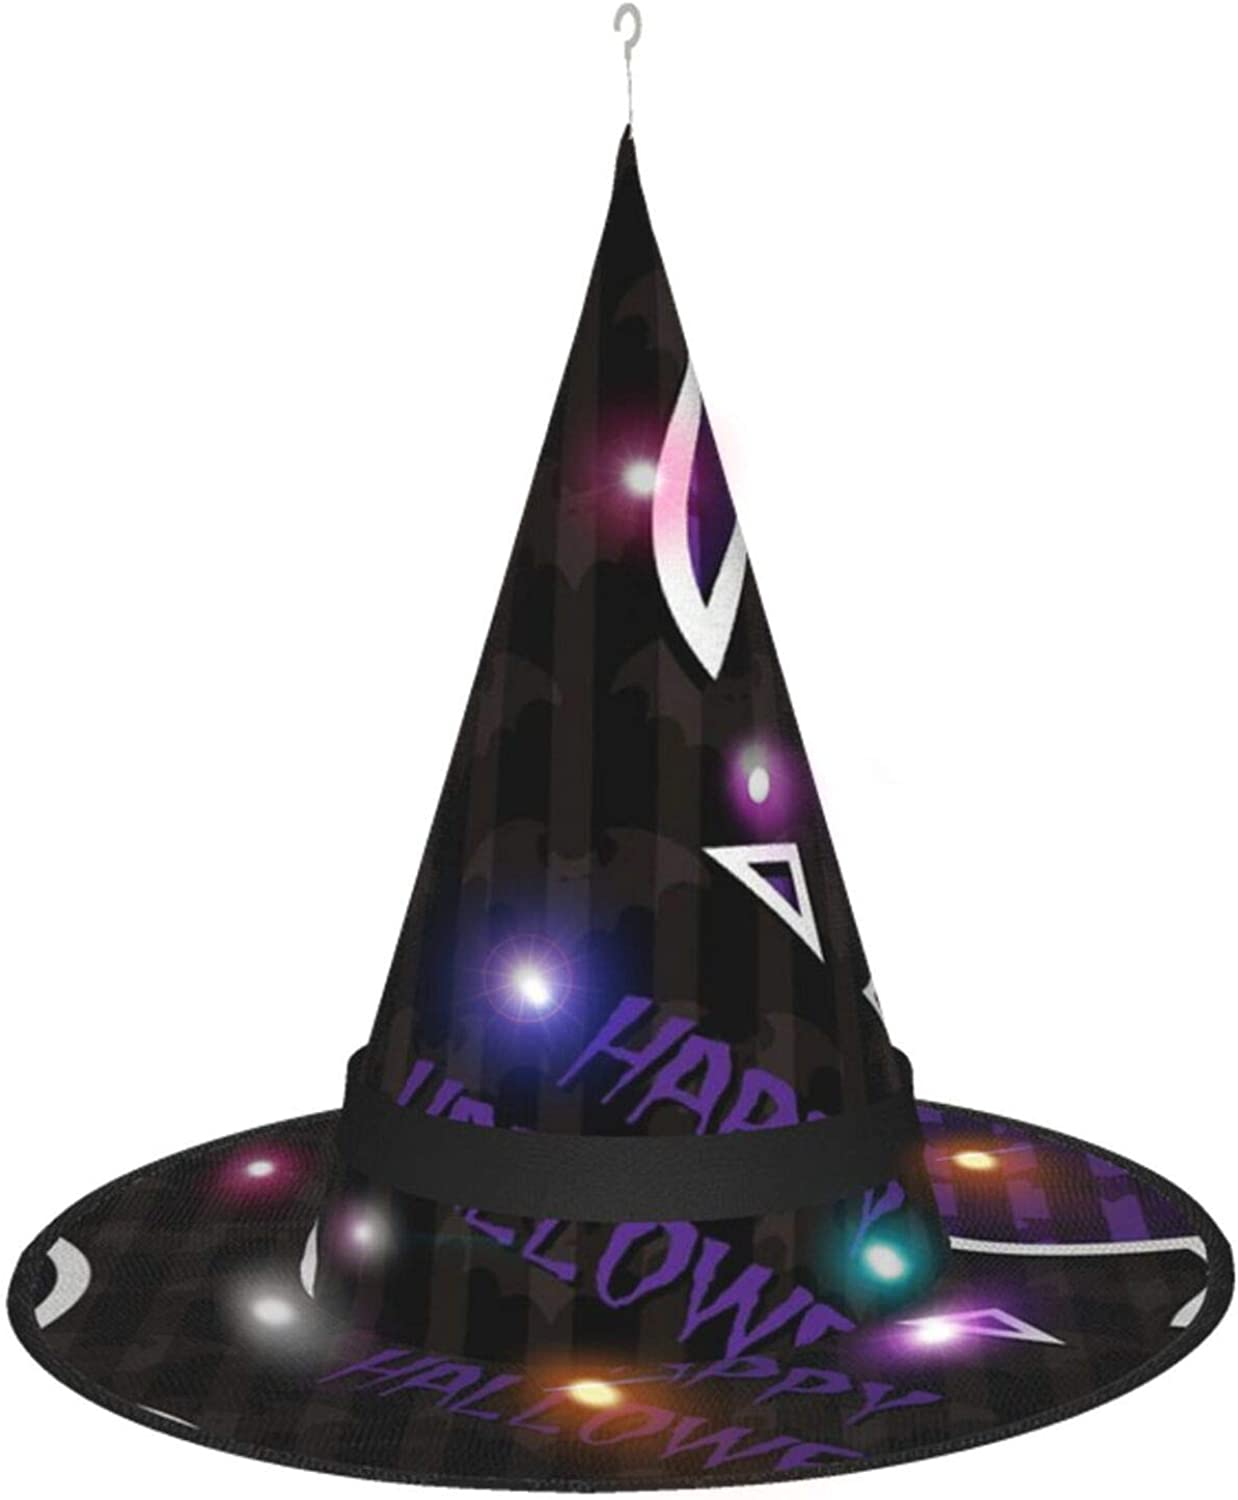 CHICTNK Halloween N Witch Hat Props Party Ranking TOP10 Cheap bargain Birthd Cosplay Wizard